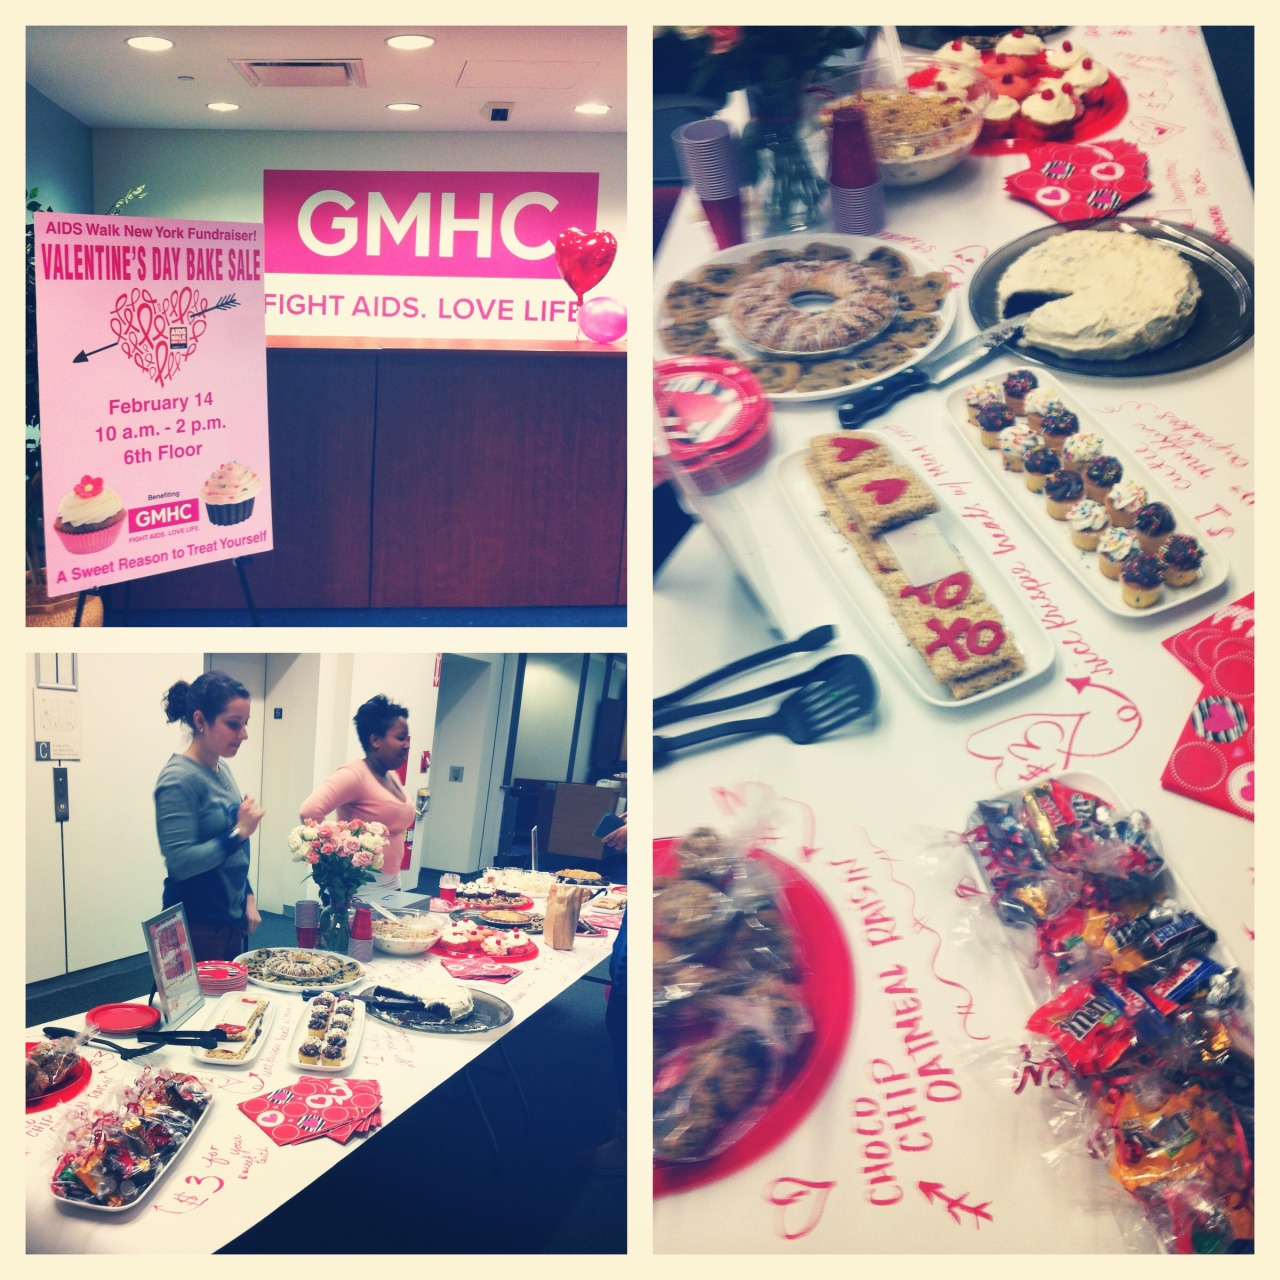 #ValentinesDay Bake Sale at @GMHC!